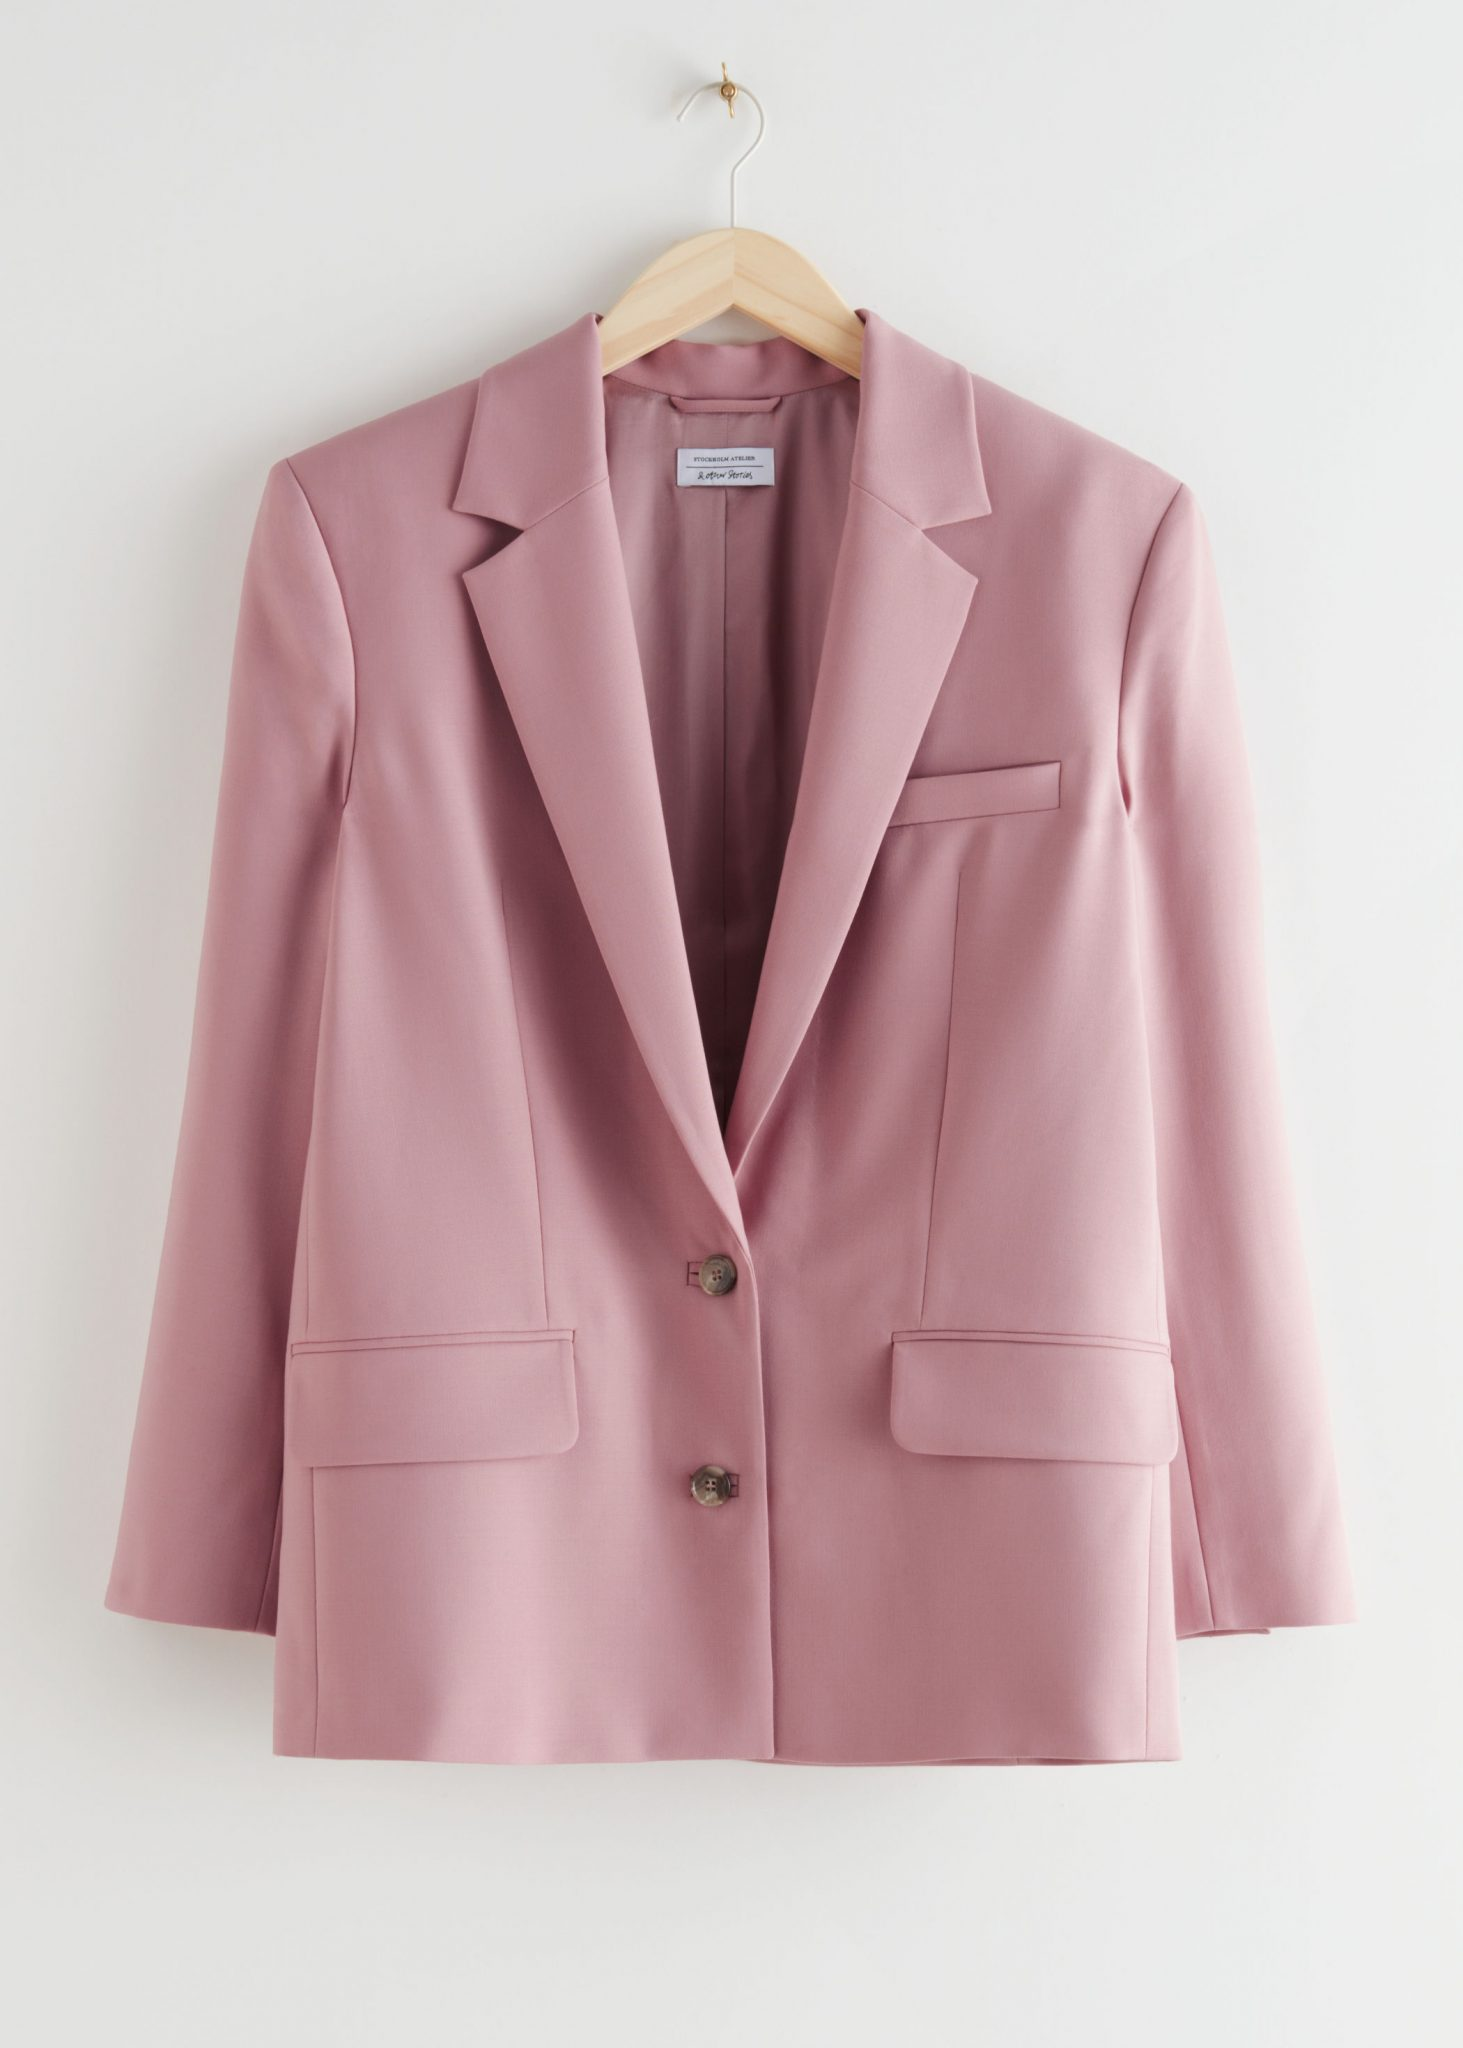 Boxy Single Breasted Blazer, & Other Stories, £165.00